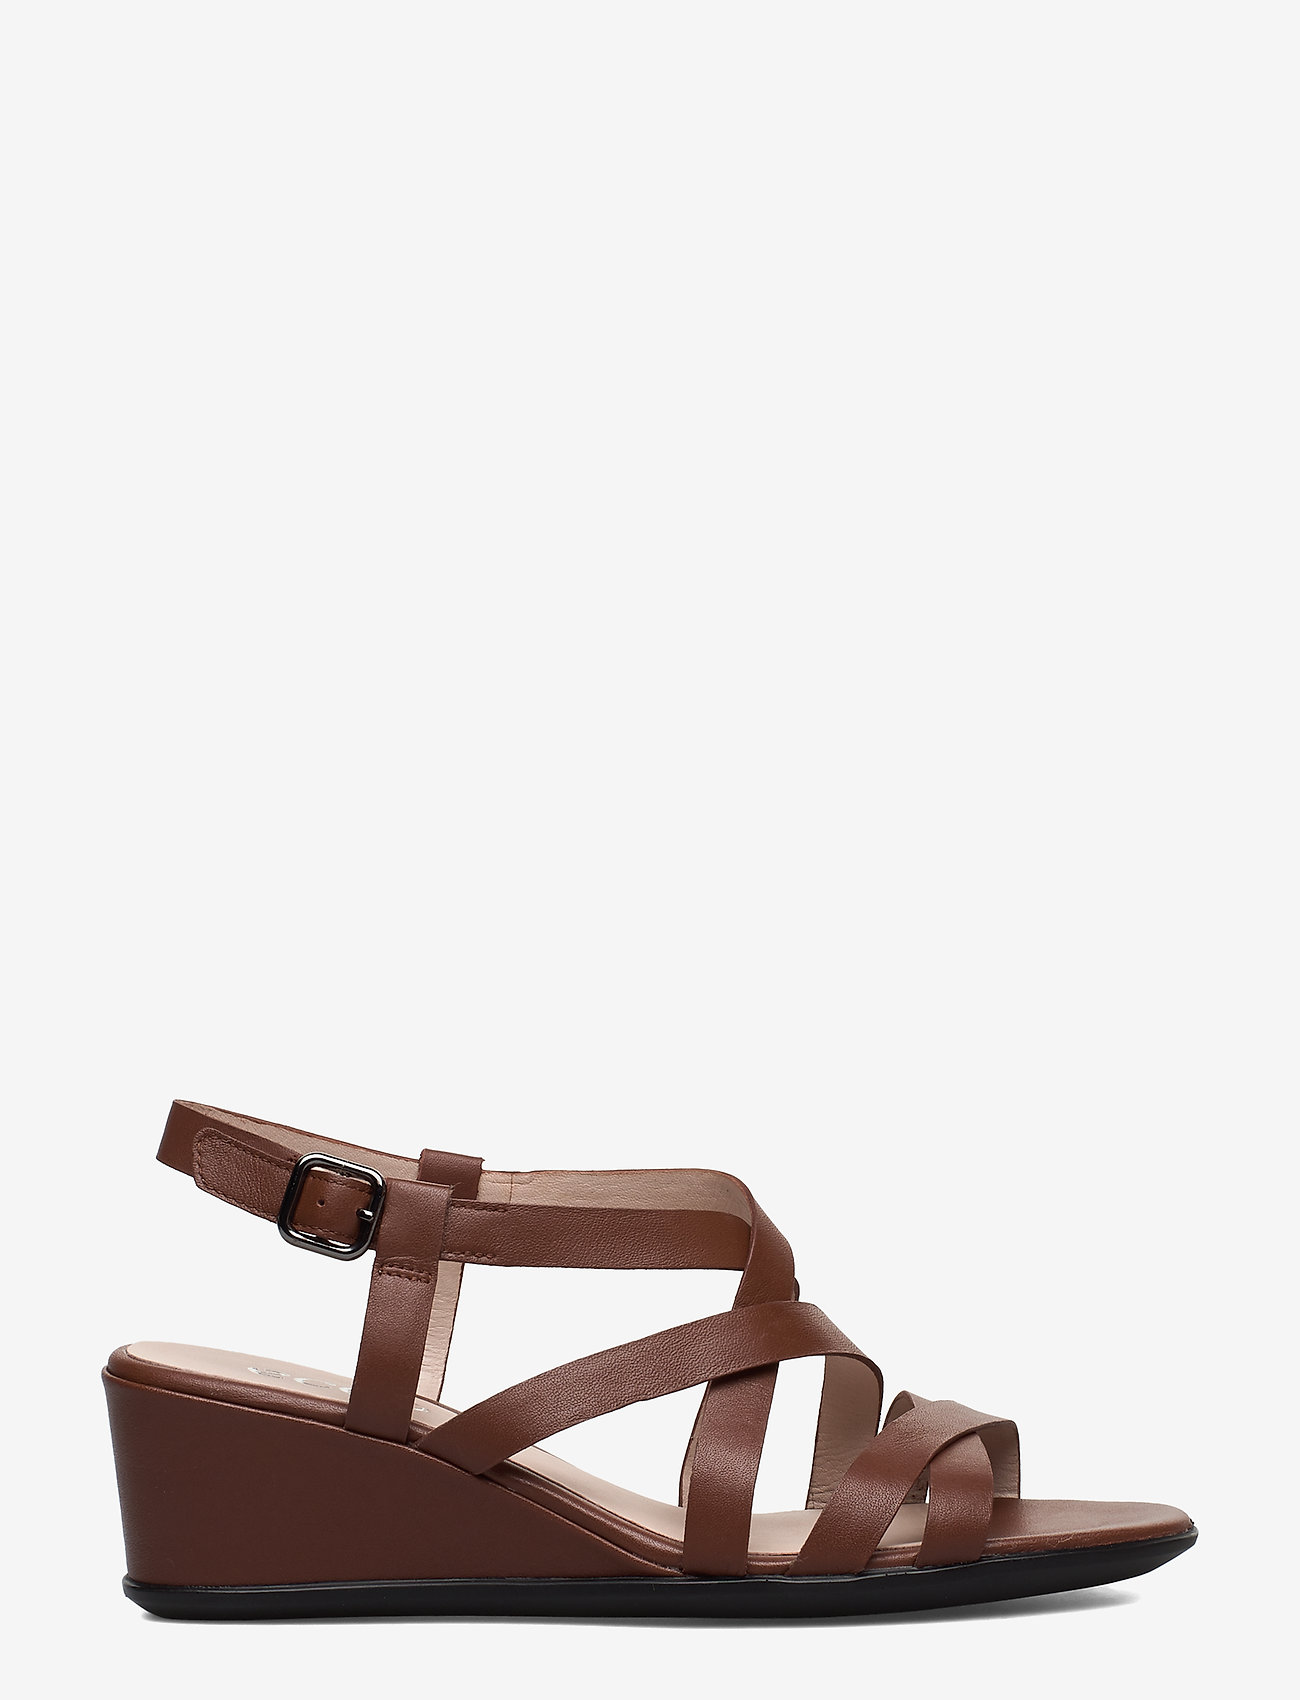 ECCO - SHAPE 35 WEDGE SANDAL - flat sandals - cinnamon - 1